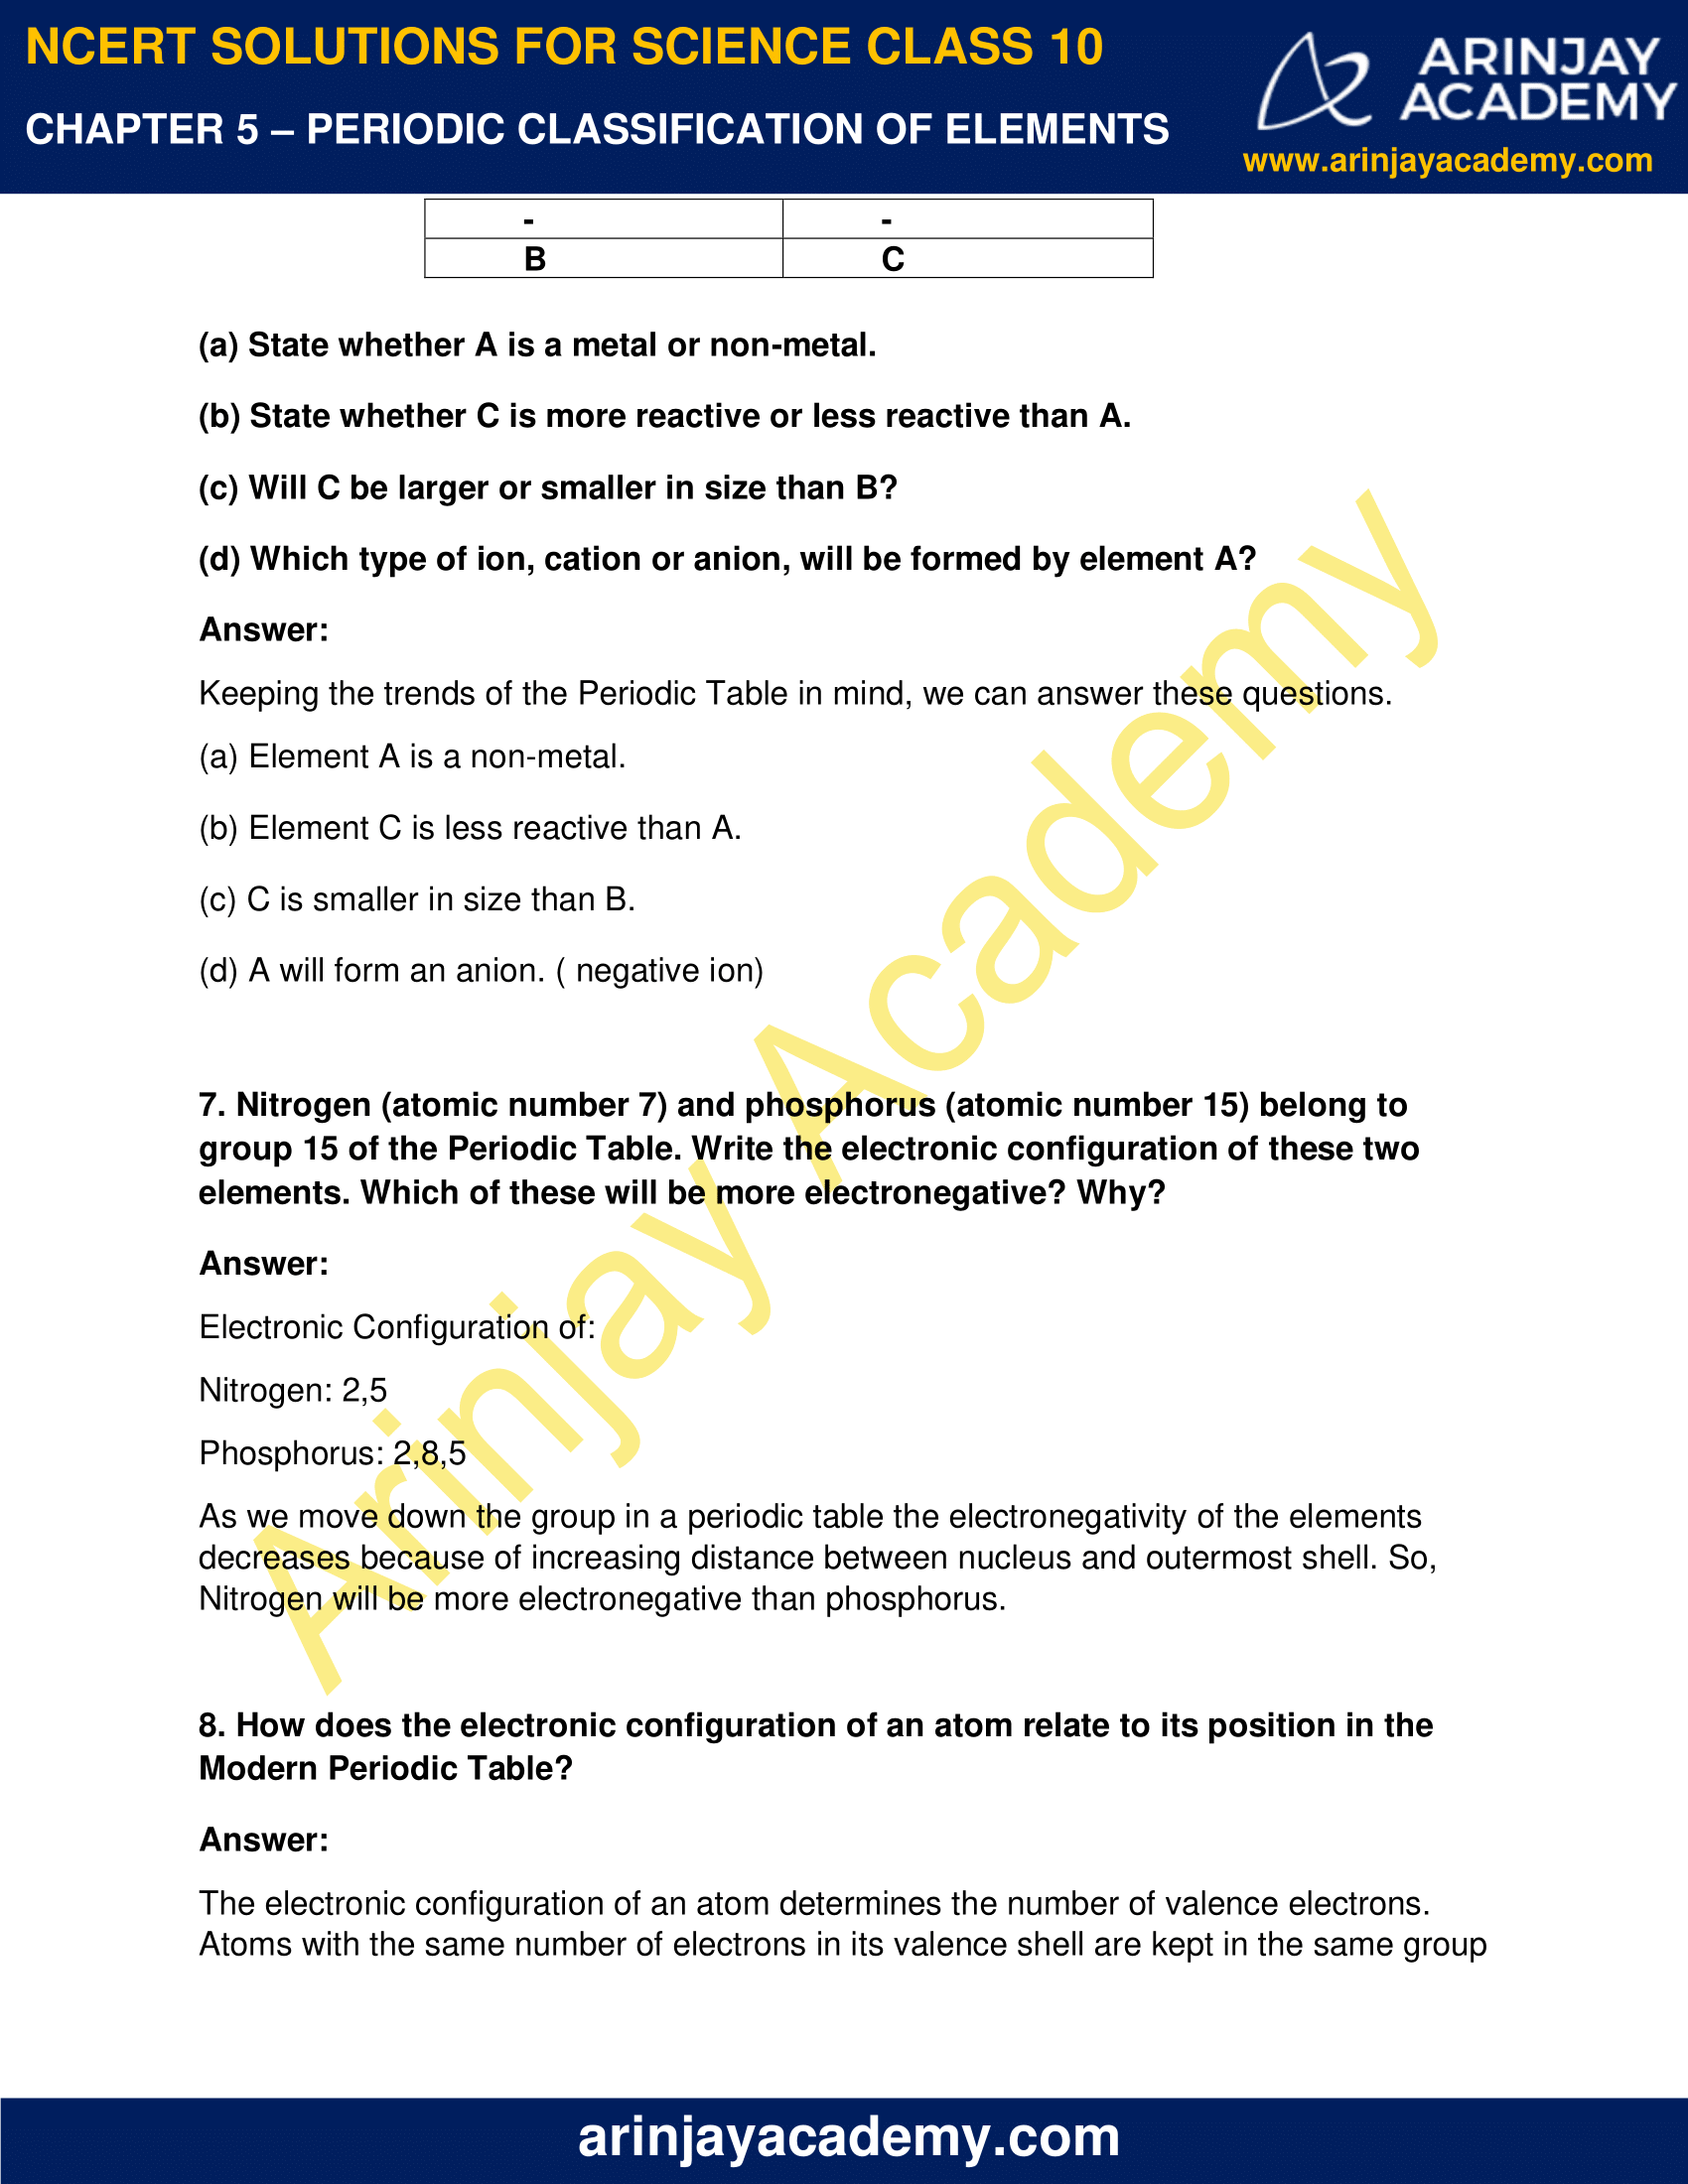 NCERT Solutions for Class 10 Science Chapter 5 image 7